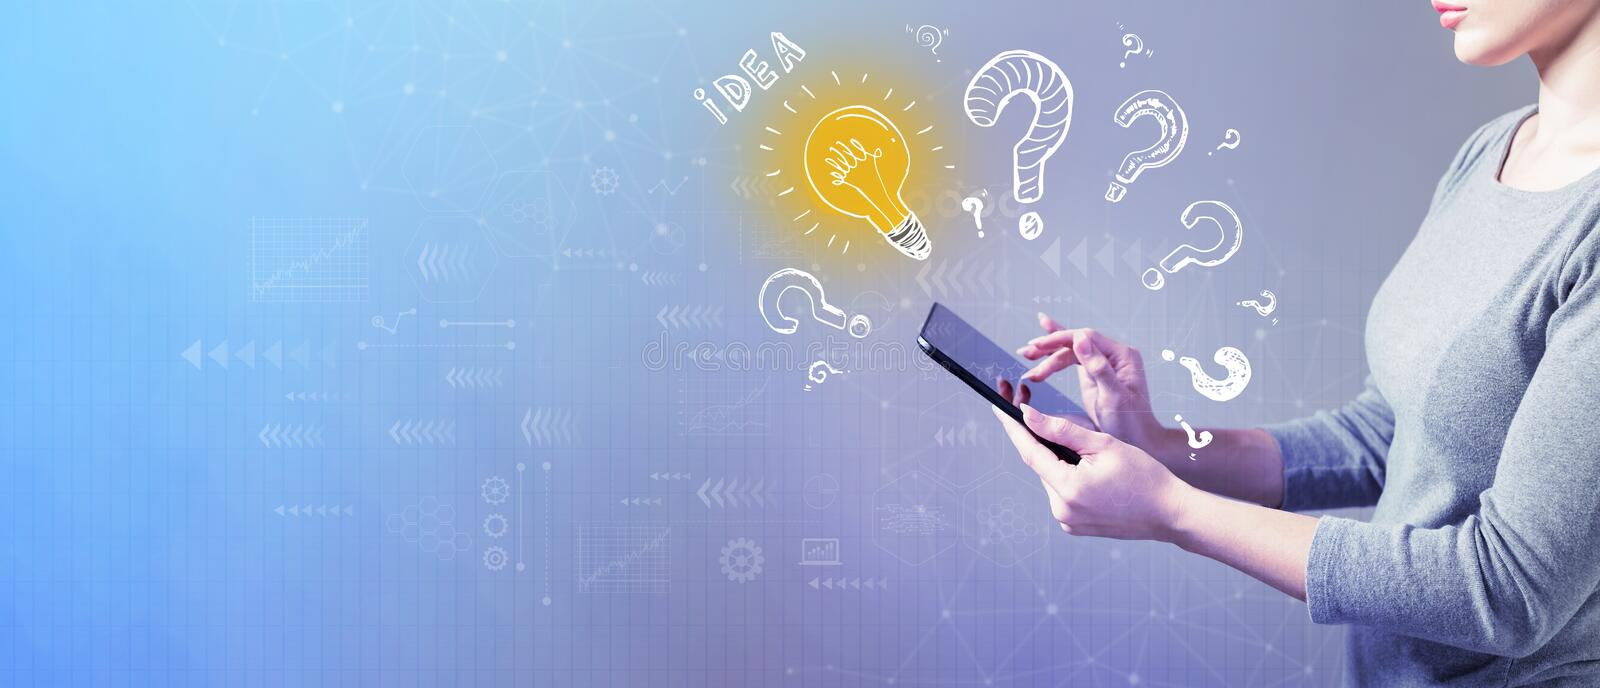 Idea light bulbs with question marks with woman using a tablet stock photography